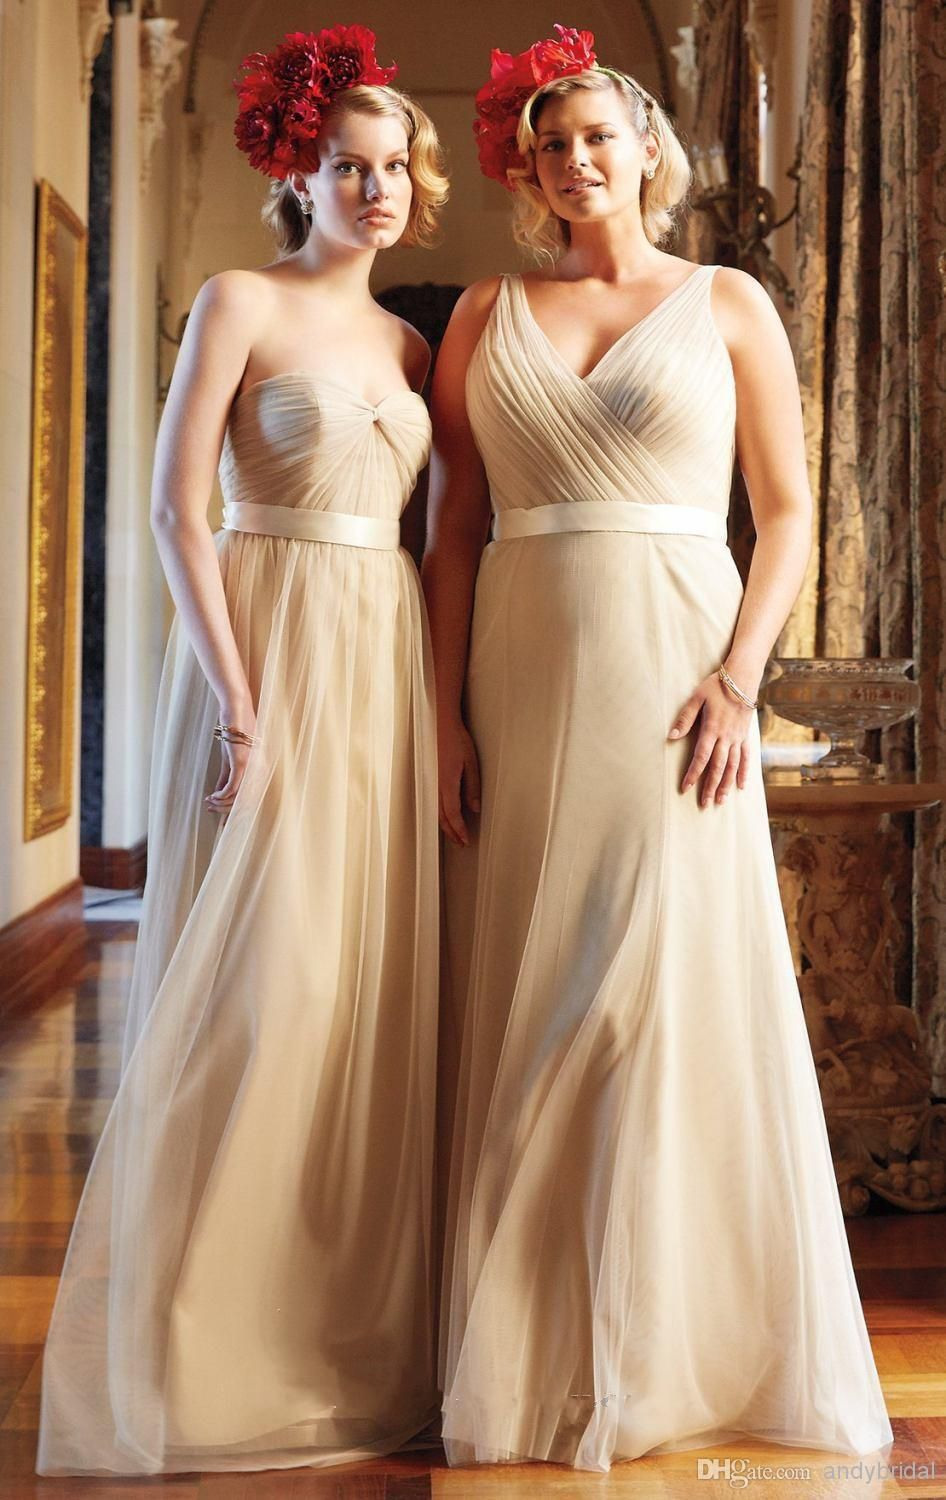 Wholesale 2015 evening dresses buy two styles champagne plus wholesale 2015 evening dresses buy two styles champagne plus size bridesmaid dresses 2015 maid of ombrellifo Choice Image